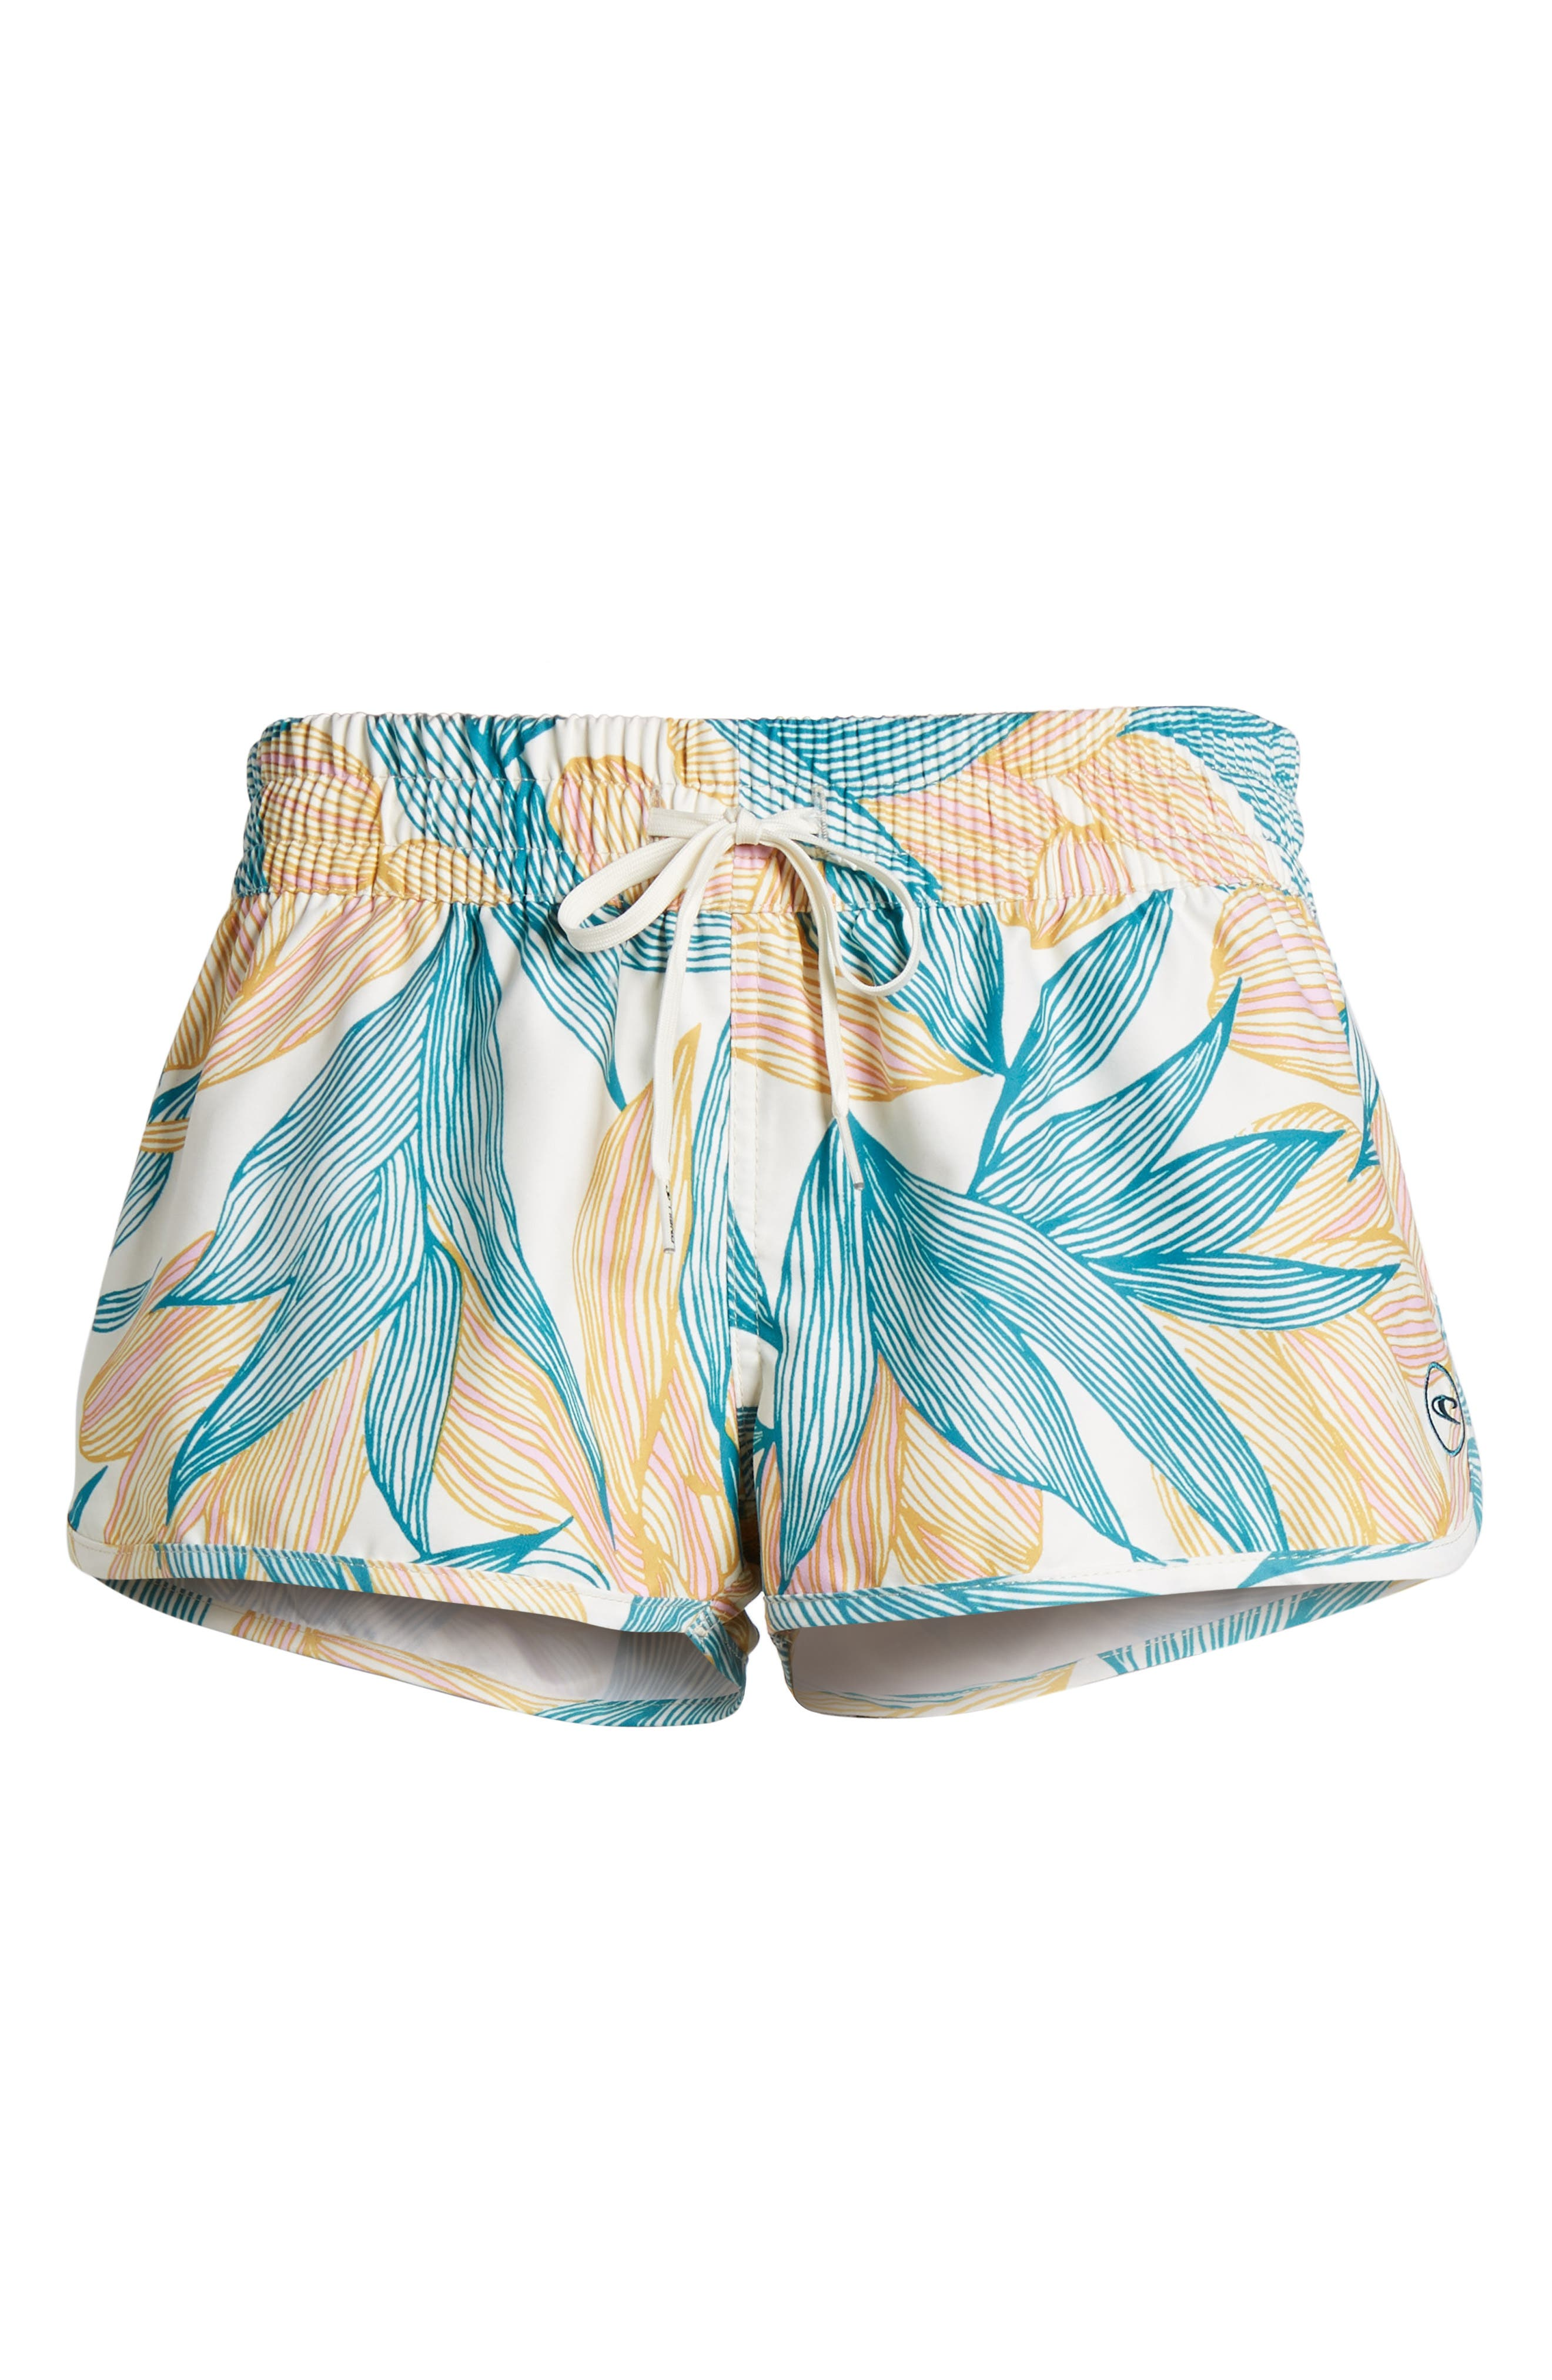 Bayside 2 Dynasuede Board Shorts,                             Alternate thumbnail 6, color,                             Island Turquoise